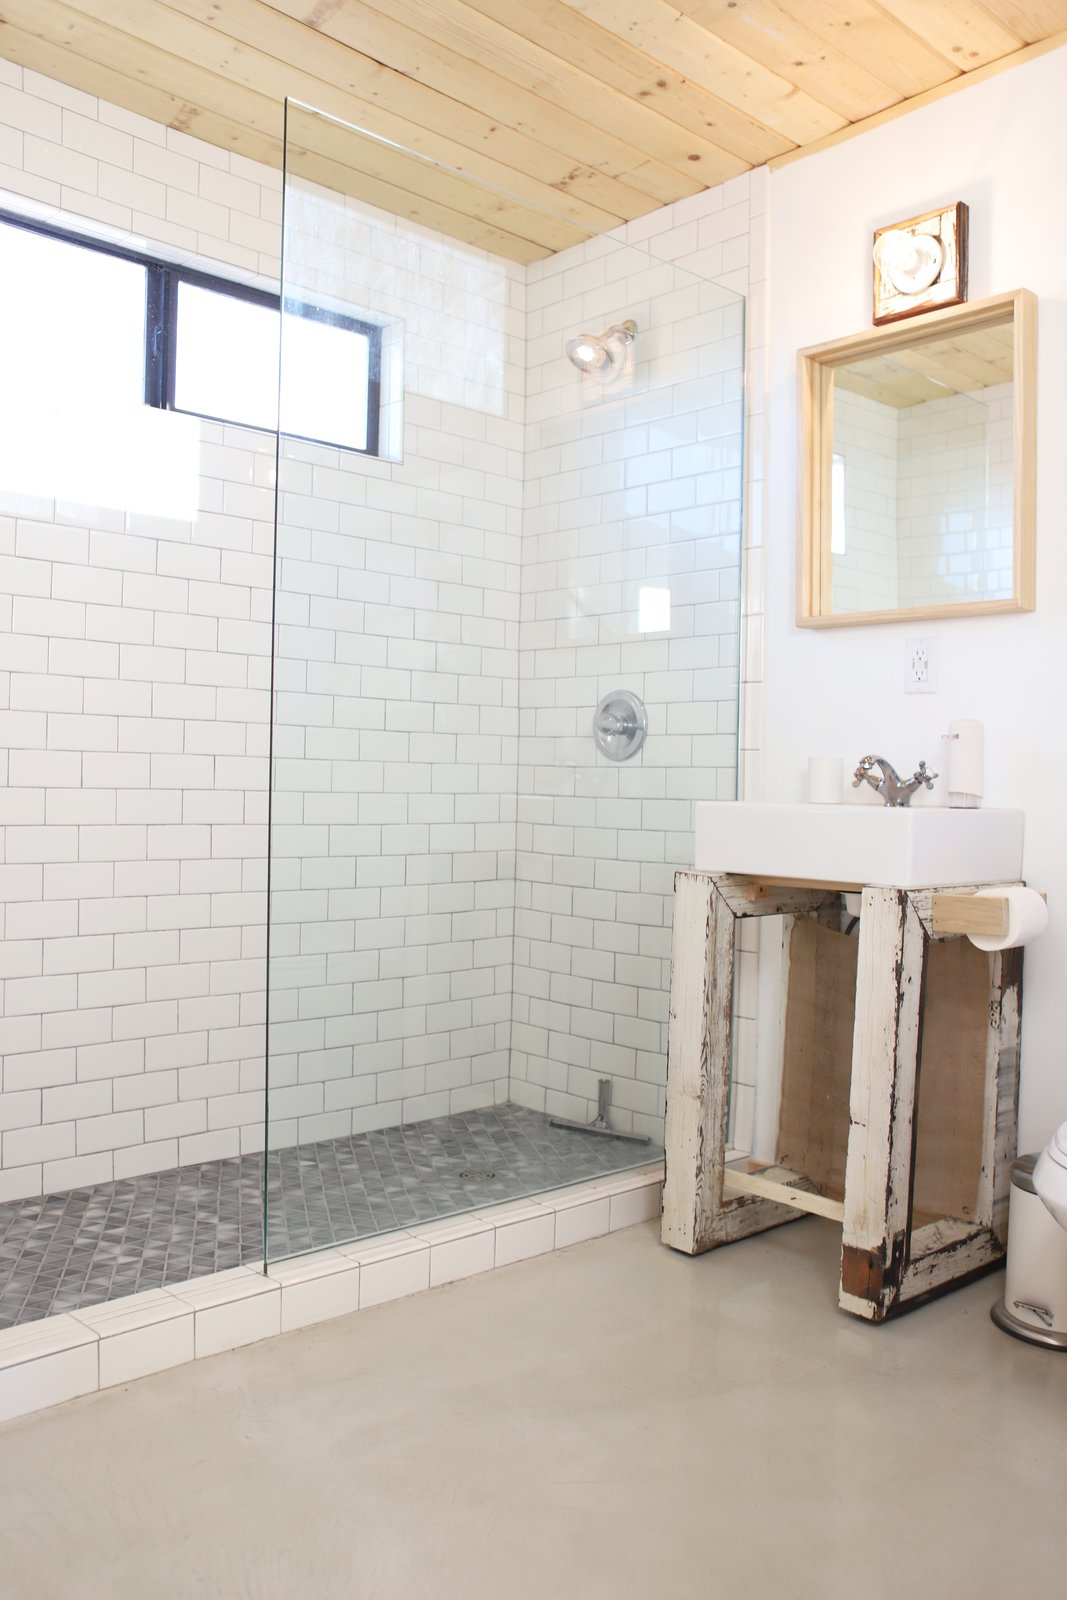 A glass-enclosed shower helps increased the sense of space in the tiny bathroom.